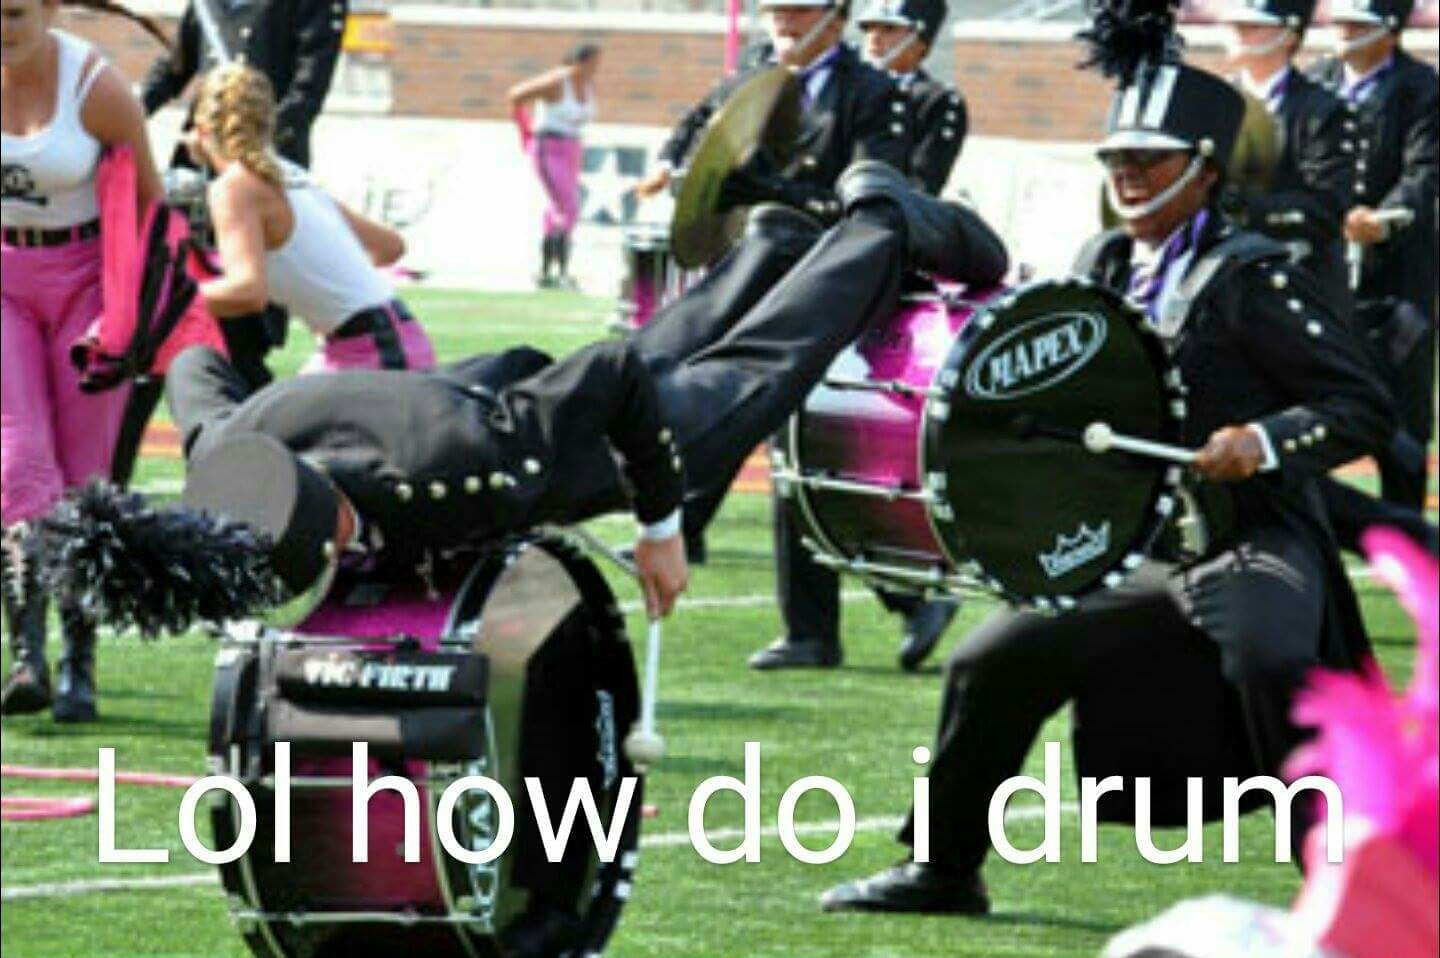 When you ask marching band kids how life's going - meme